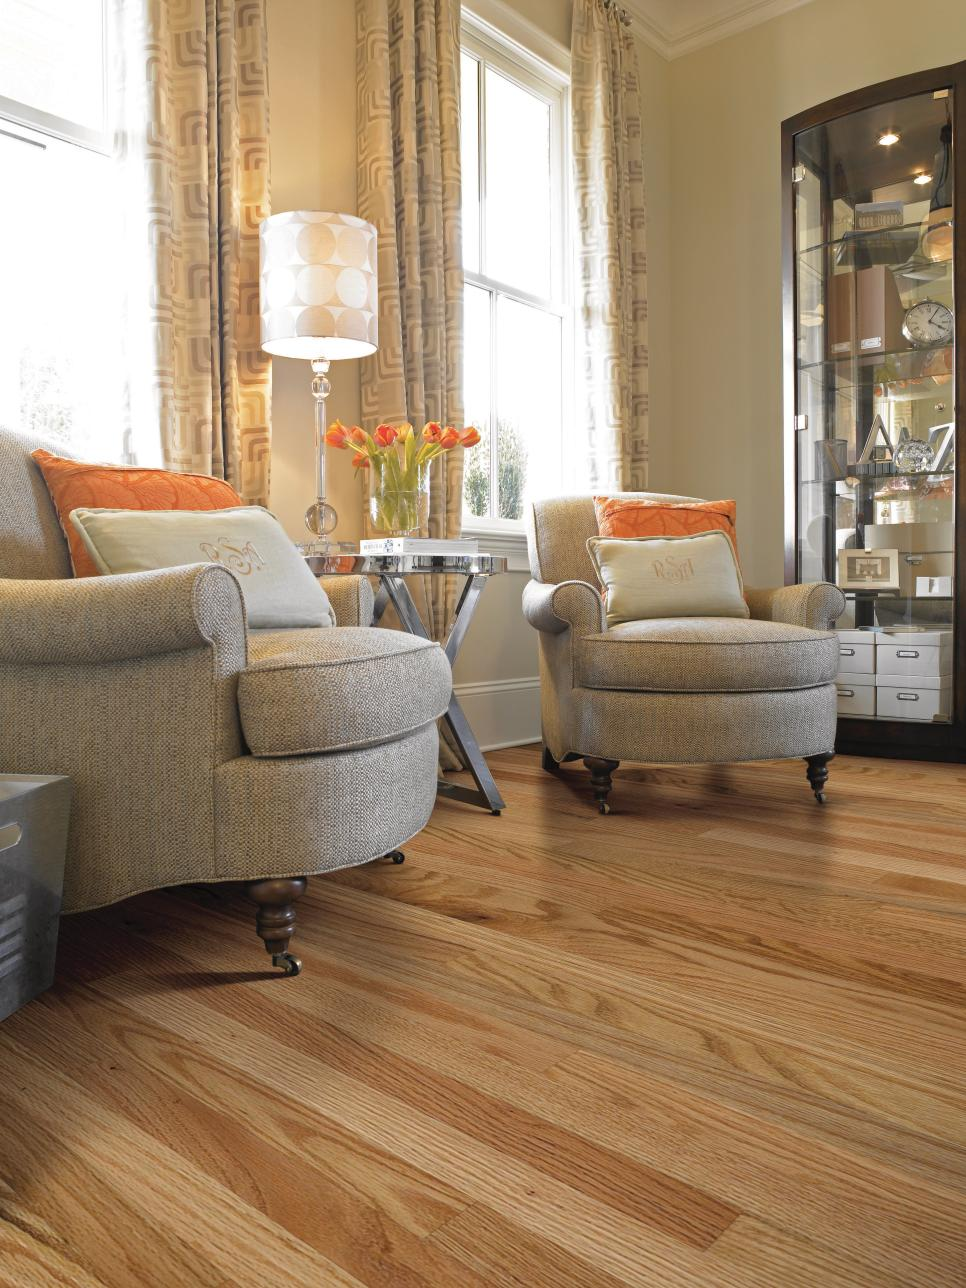 10 stunning hardwood flooring options hgtv for Room design wood